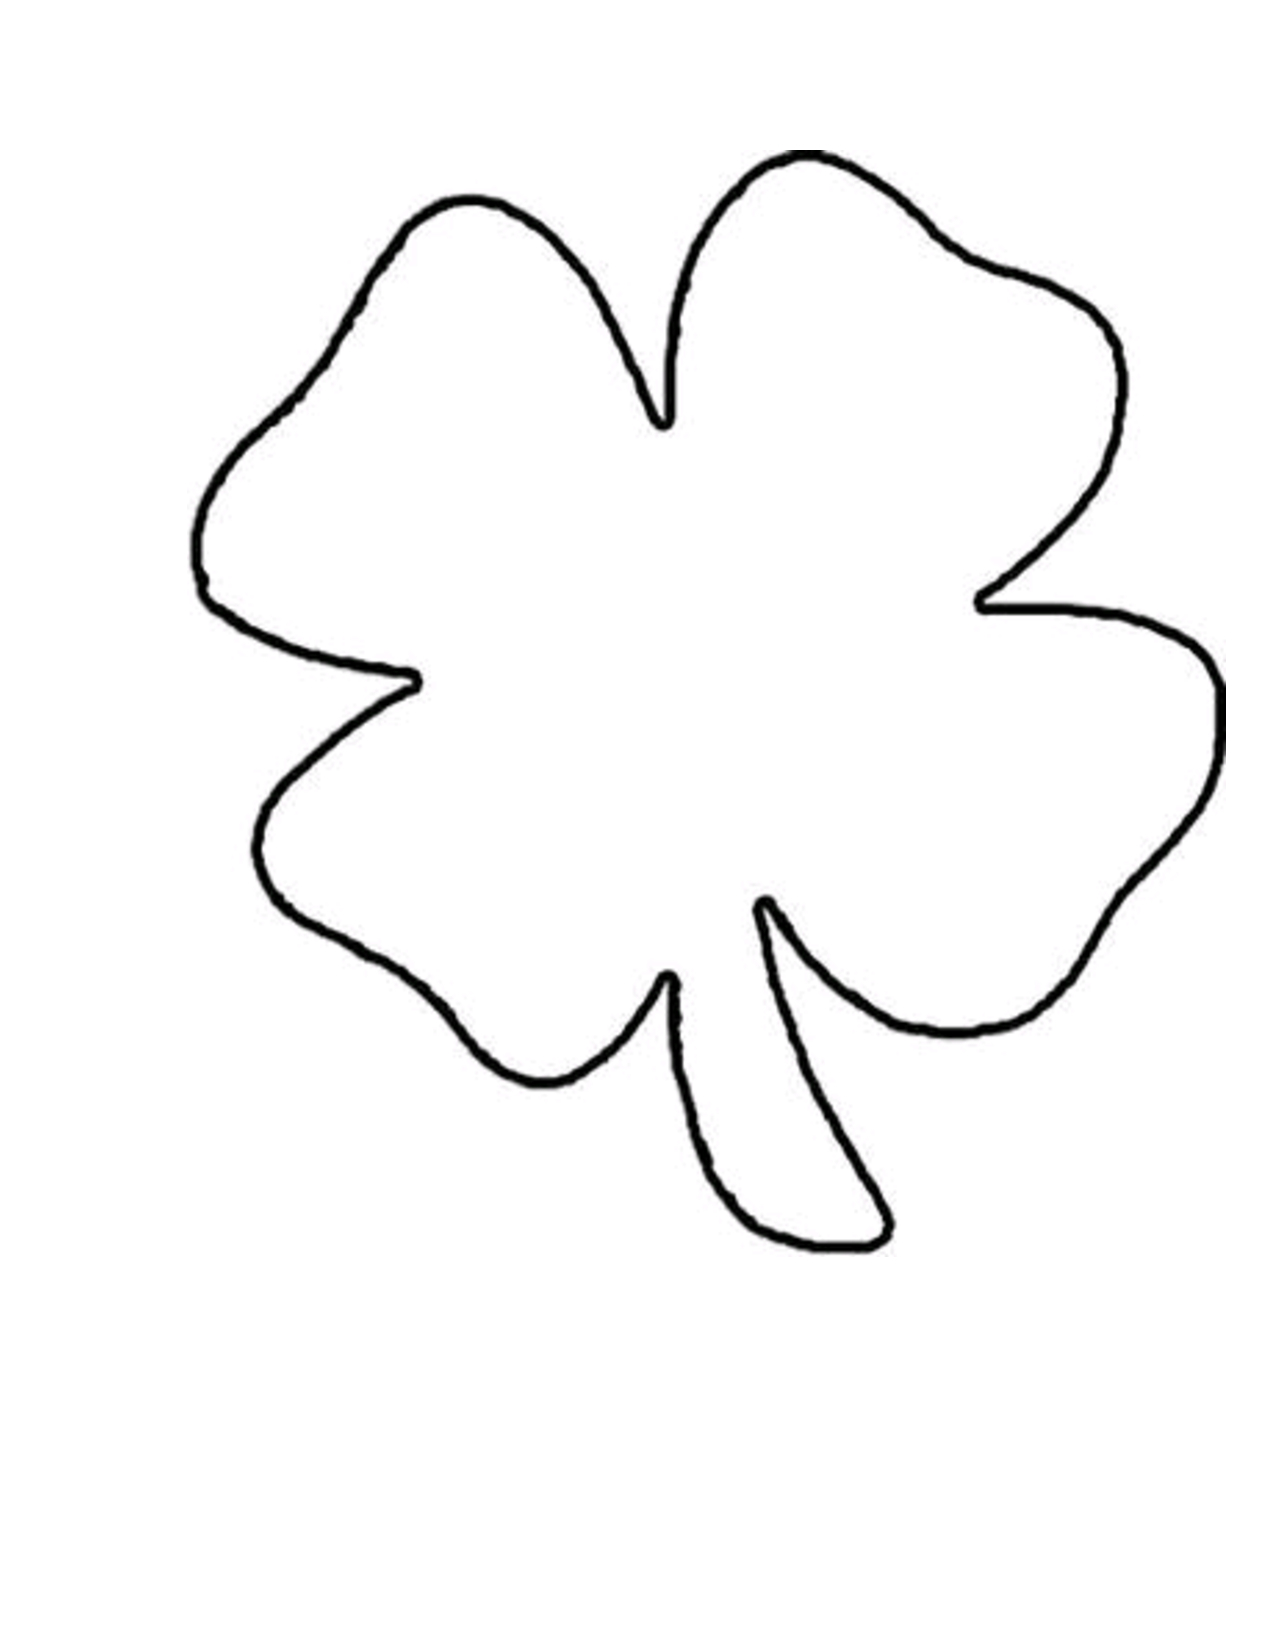 4+Clover+Leaf+Template+Shamrock+Pattern | St. Patricks | Shamrock - Four Leaf Clover Template Printable Free